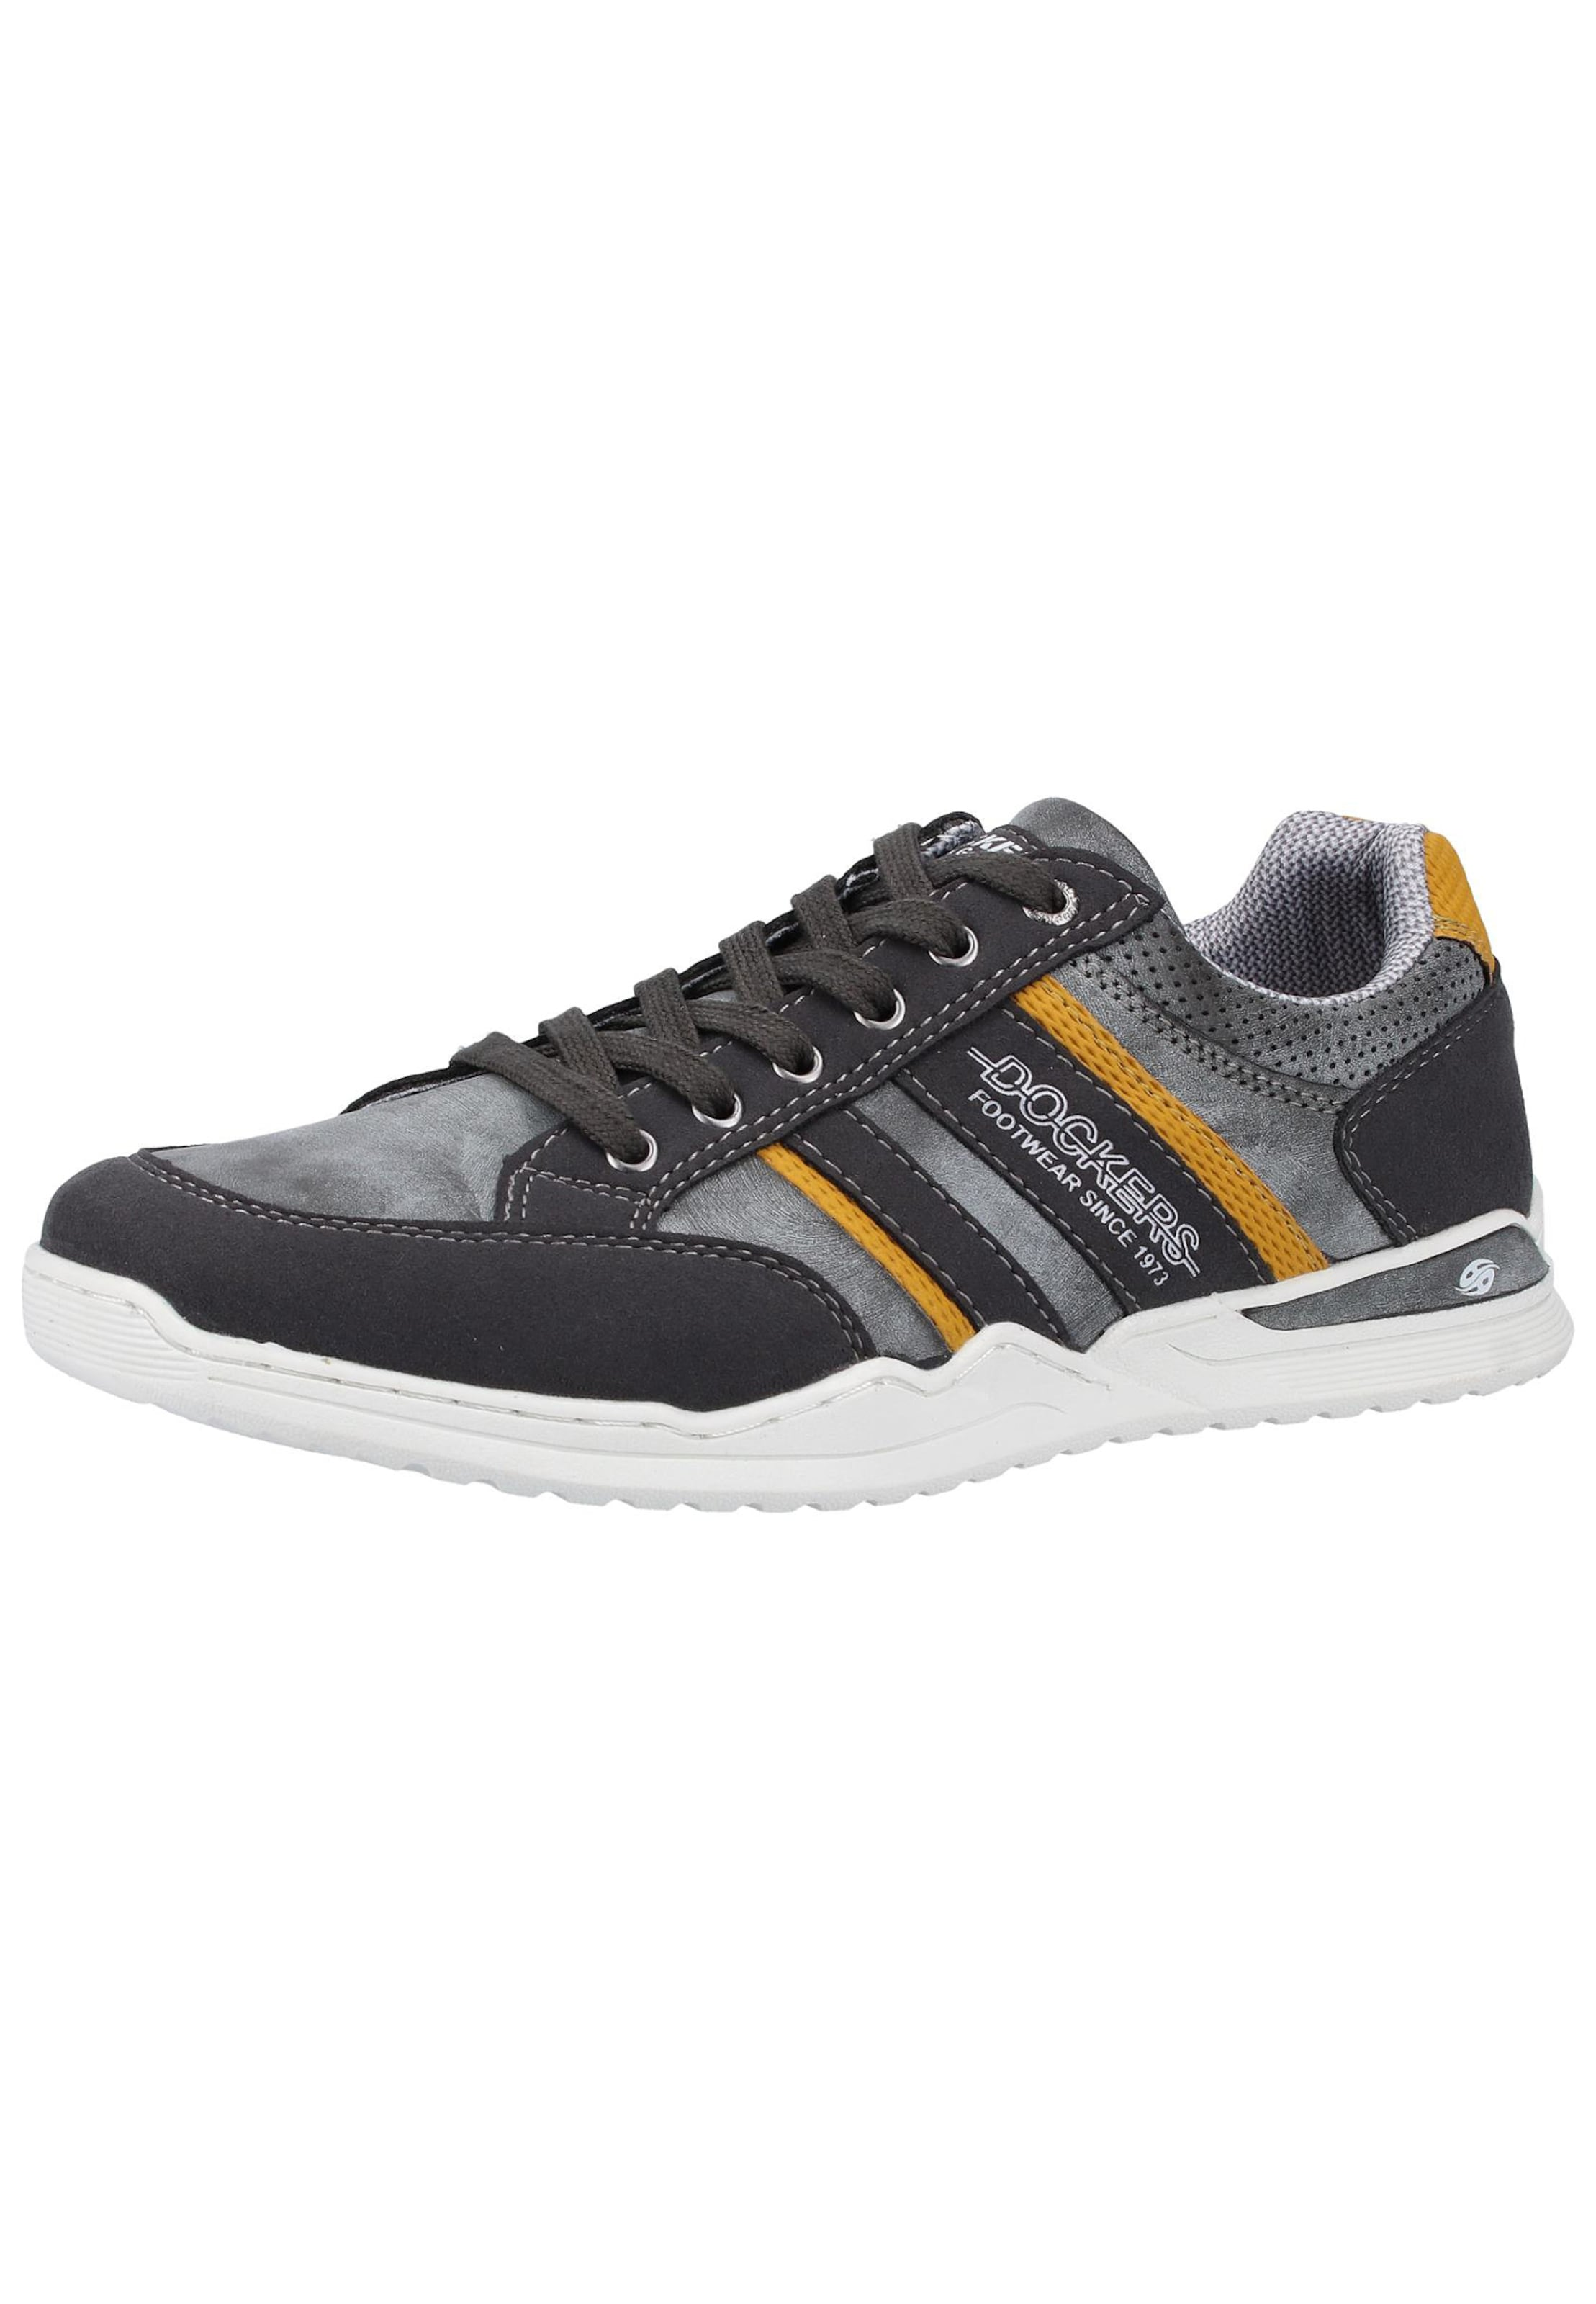 GoldgelbGrau Anthrazit Dockers Gerli By In Sneaker xoBCde